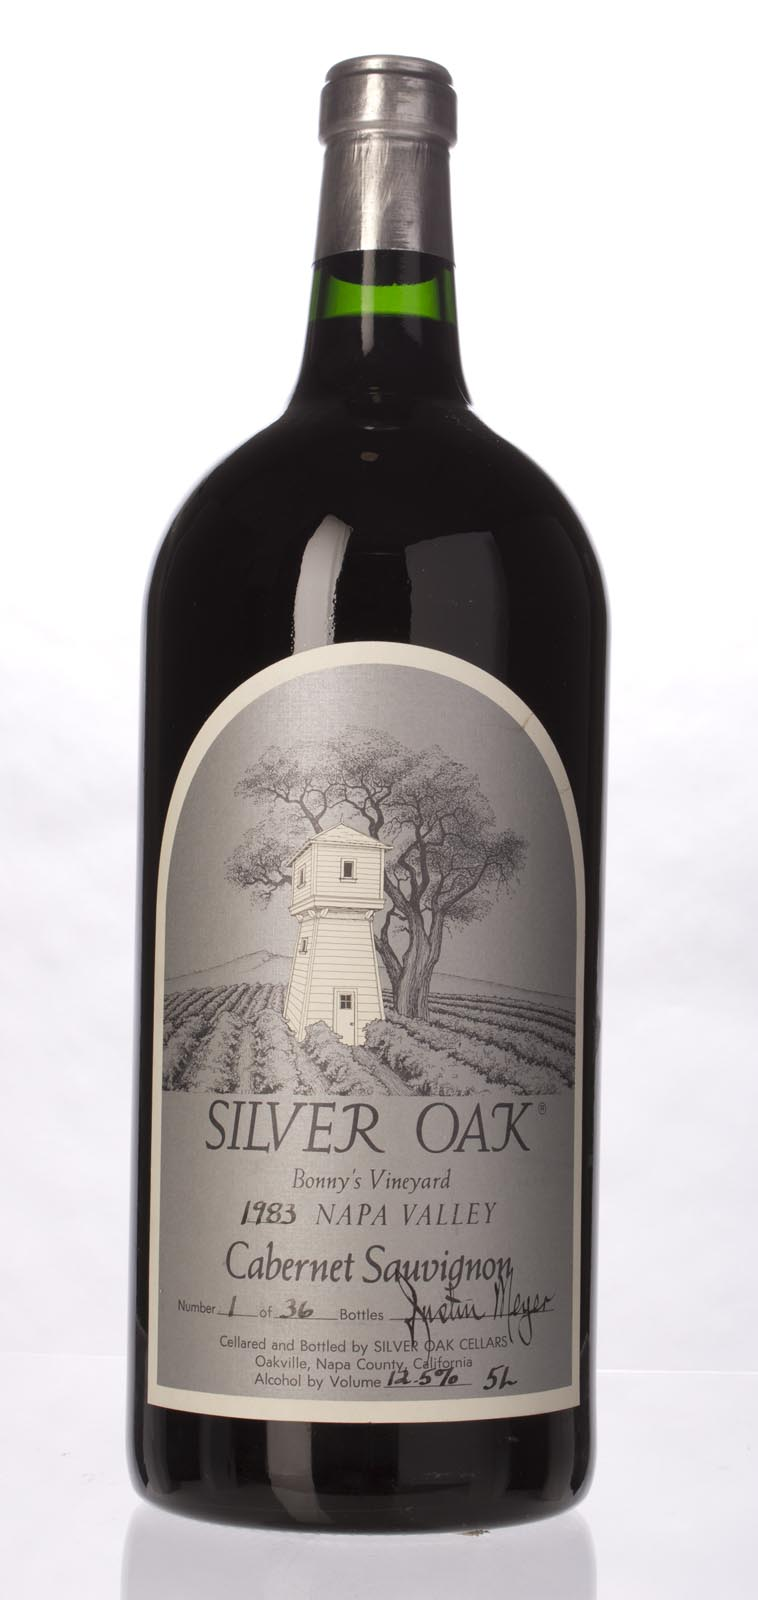 Silver Oak Cabernet Sauvignon Bonny`s Vineyard 1983, 5L () from The BPW - Merchants of rare and fine wines.